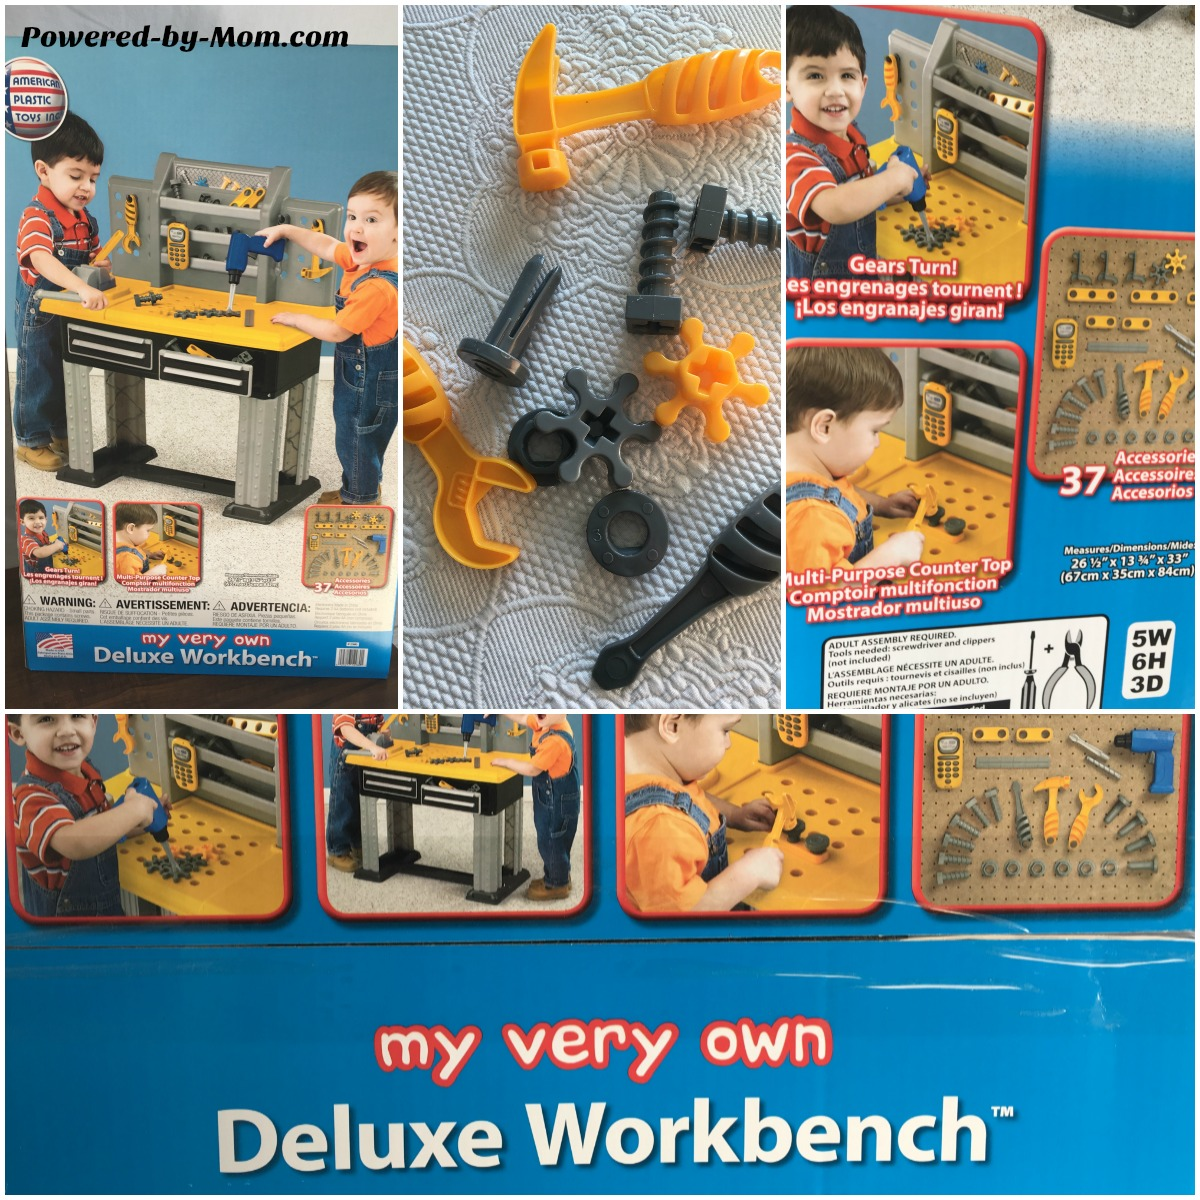 Imaginative Play with American Plastic Toys Review - Powered by Mom